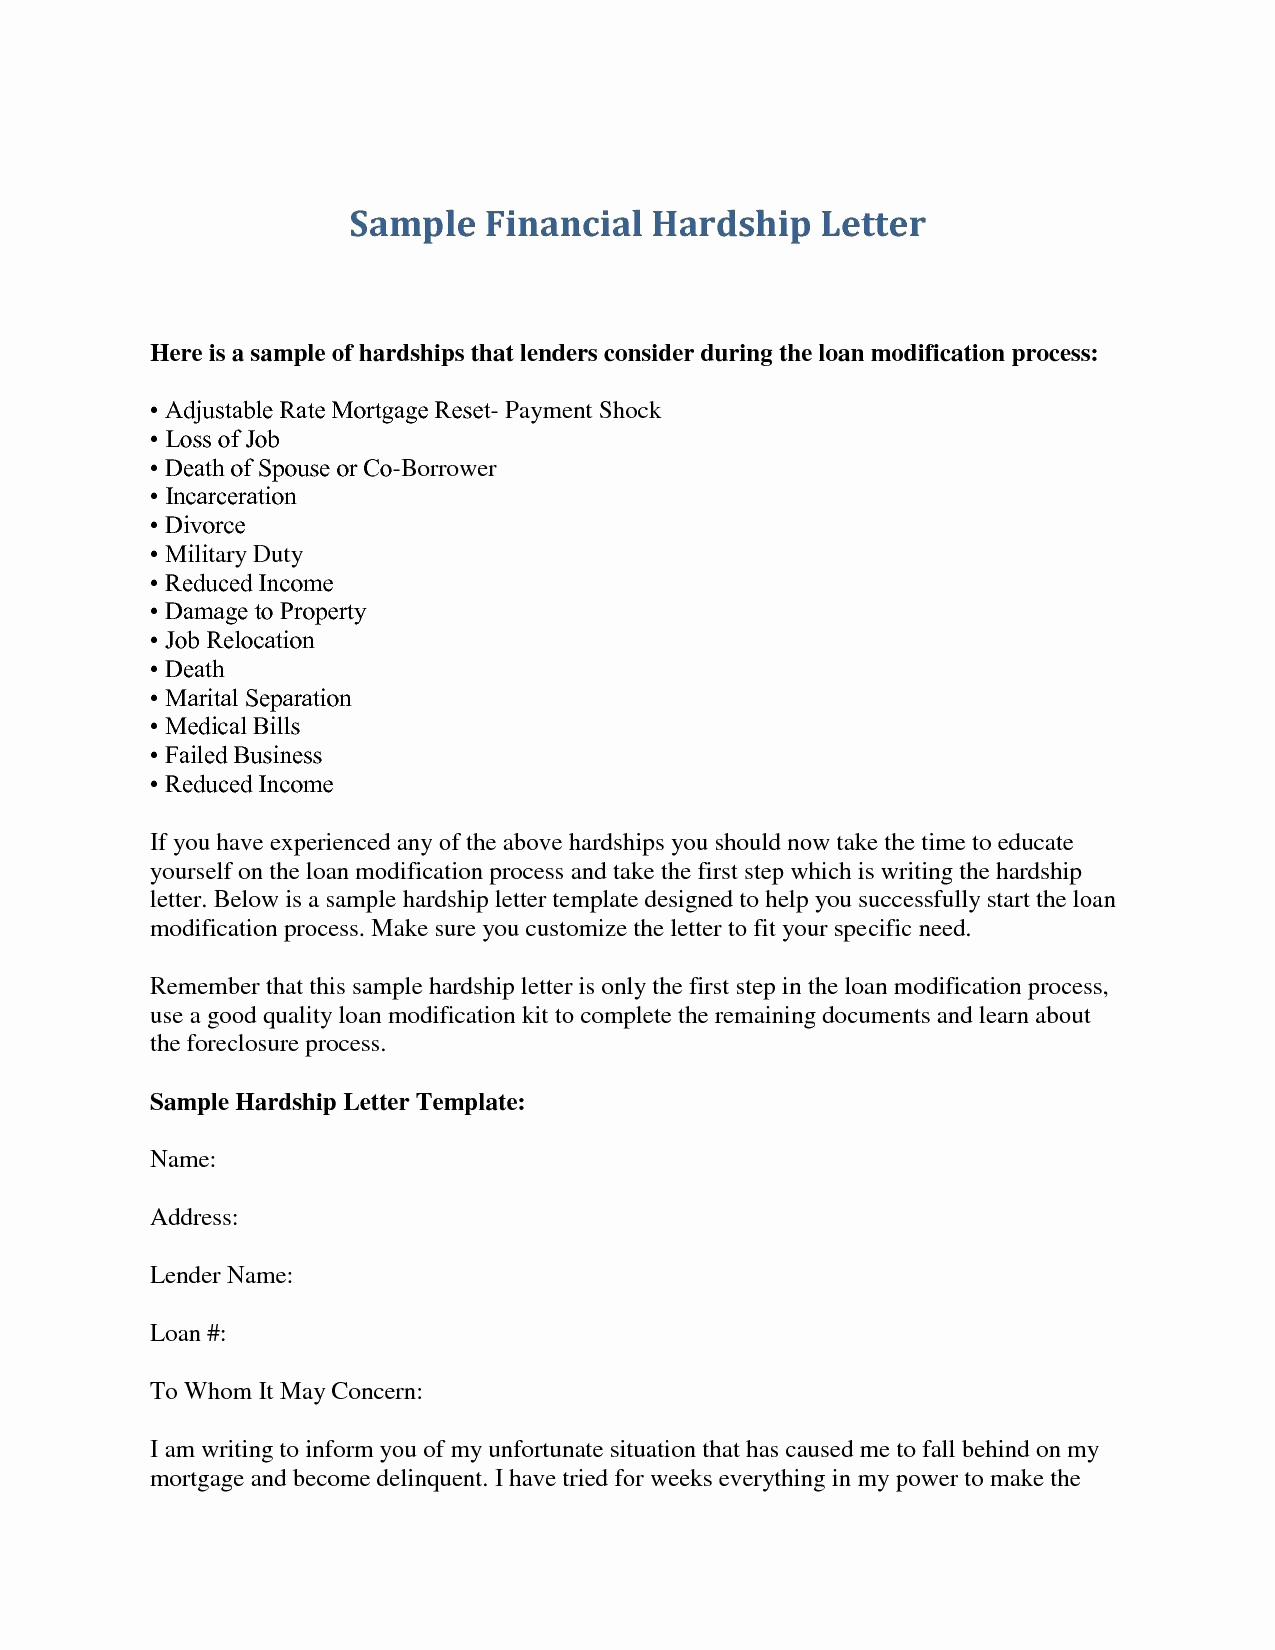 financial hardship letter template example-Immigration Hardship Letter for A Friend New Sample Good Moral Character Letter for Medical School Archives 19-n